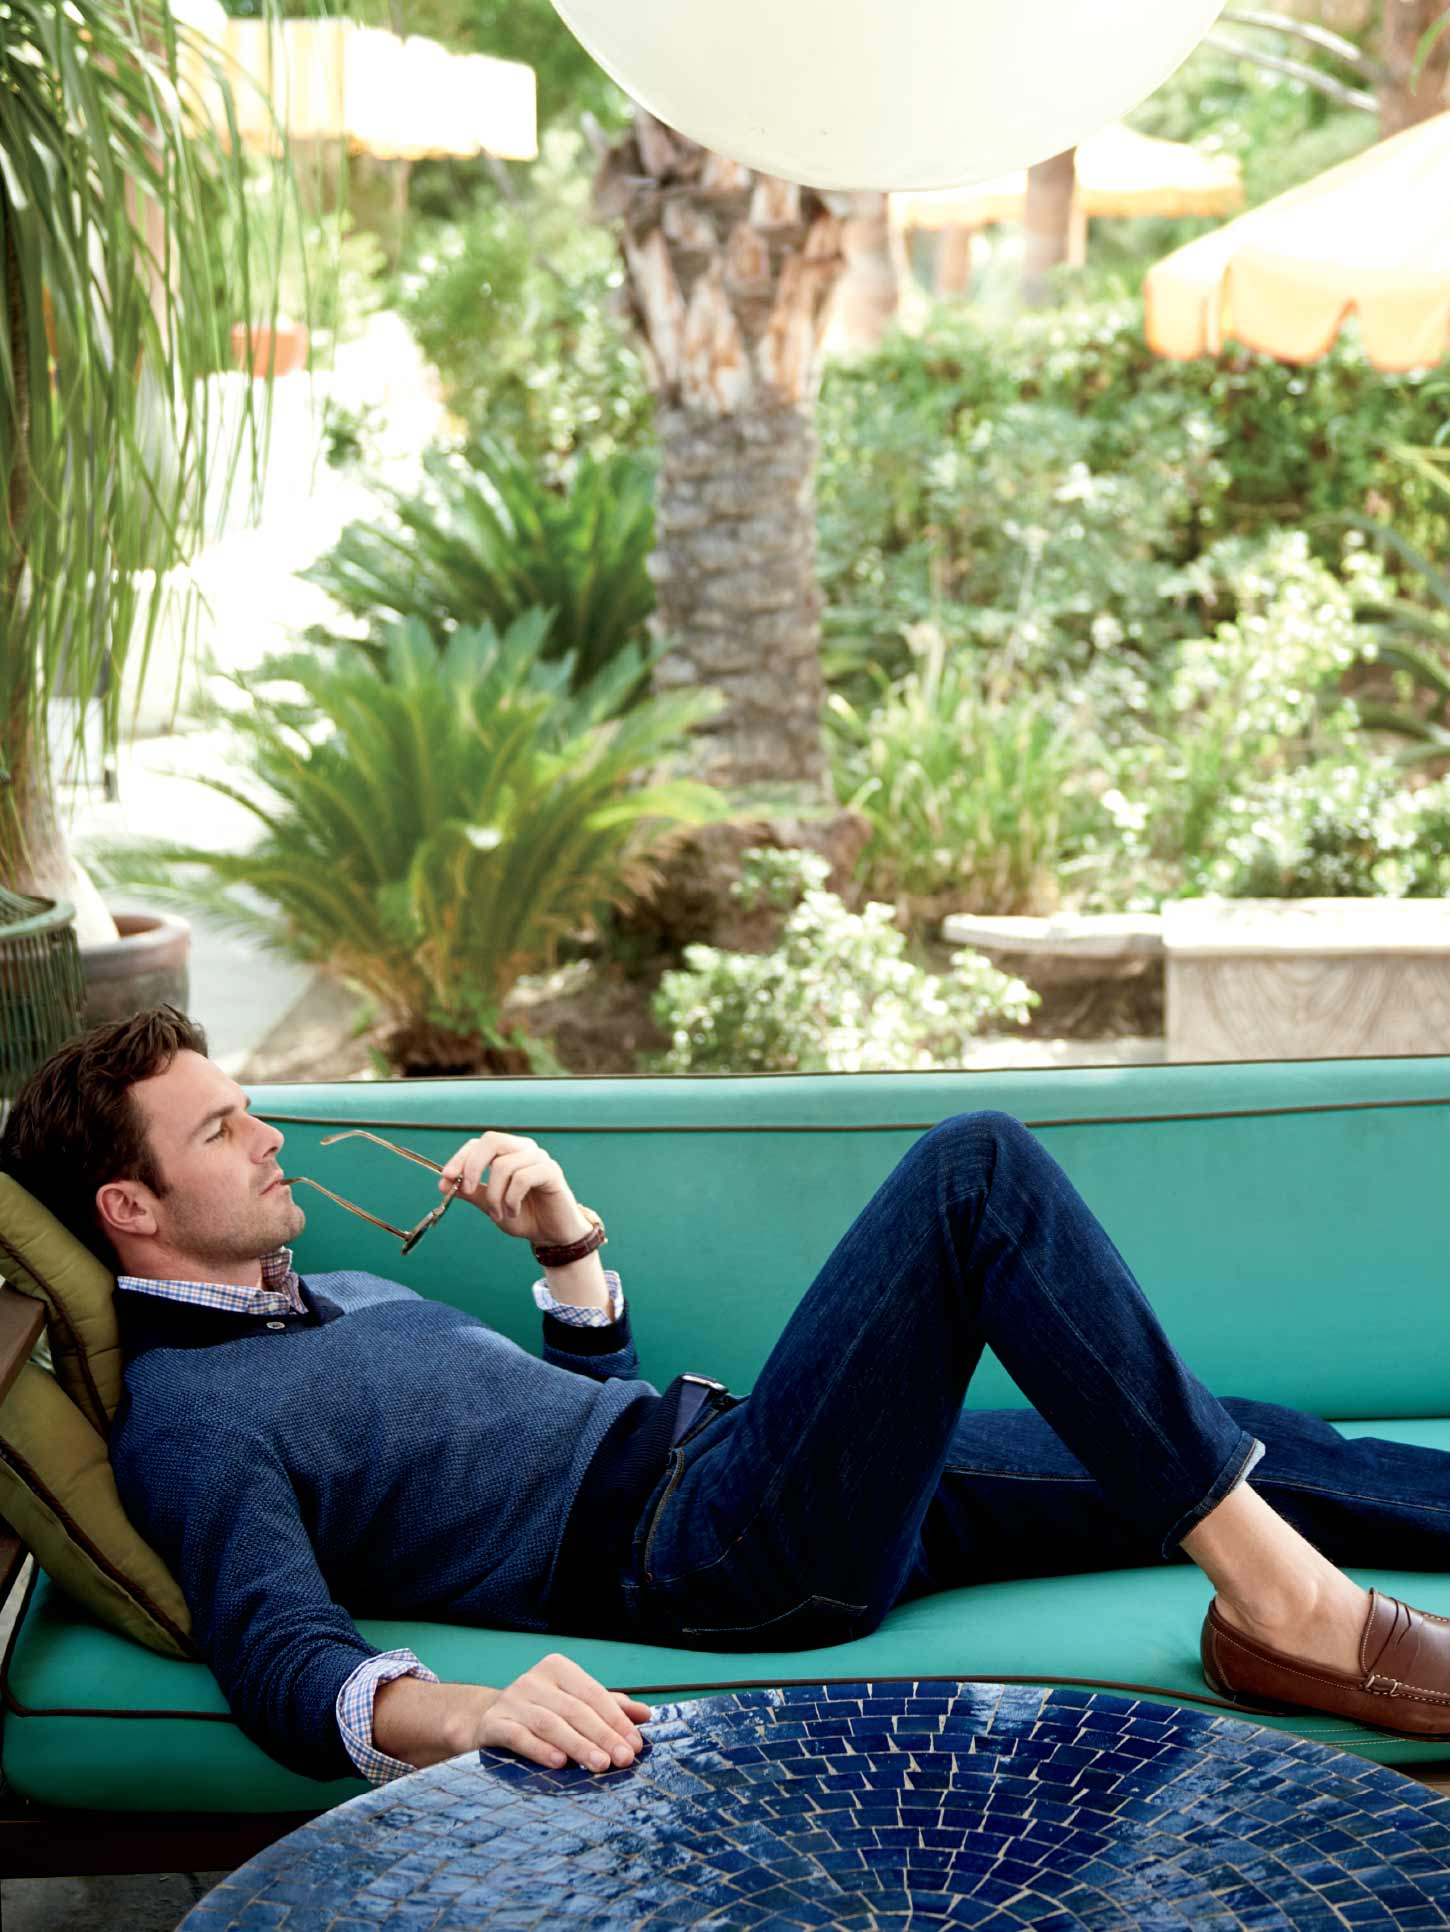 Peter Millar Image of Model Laying on Couch Outside